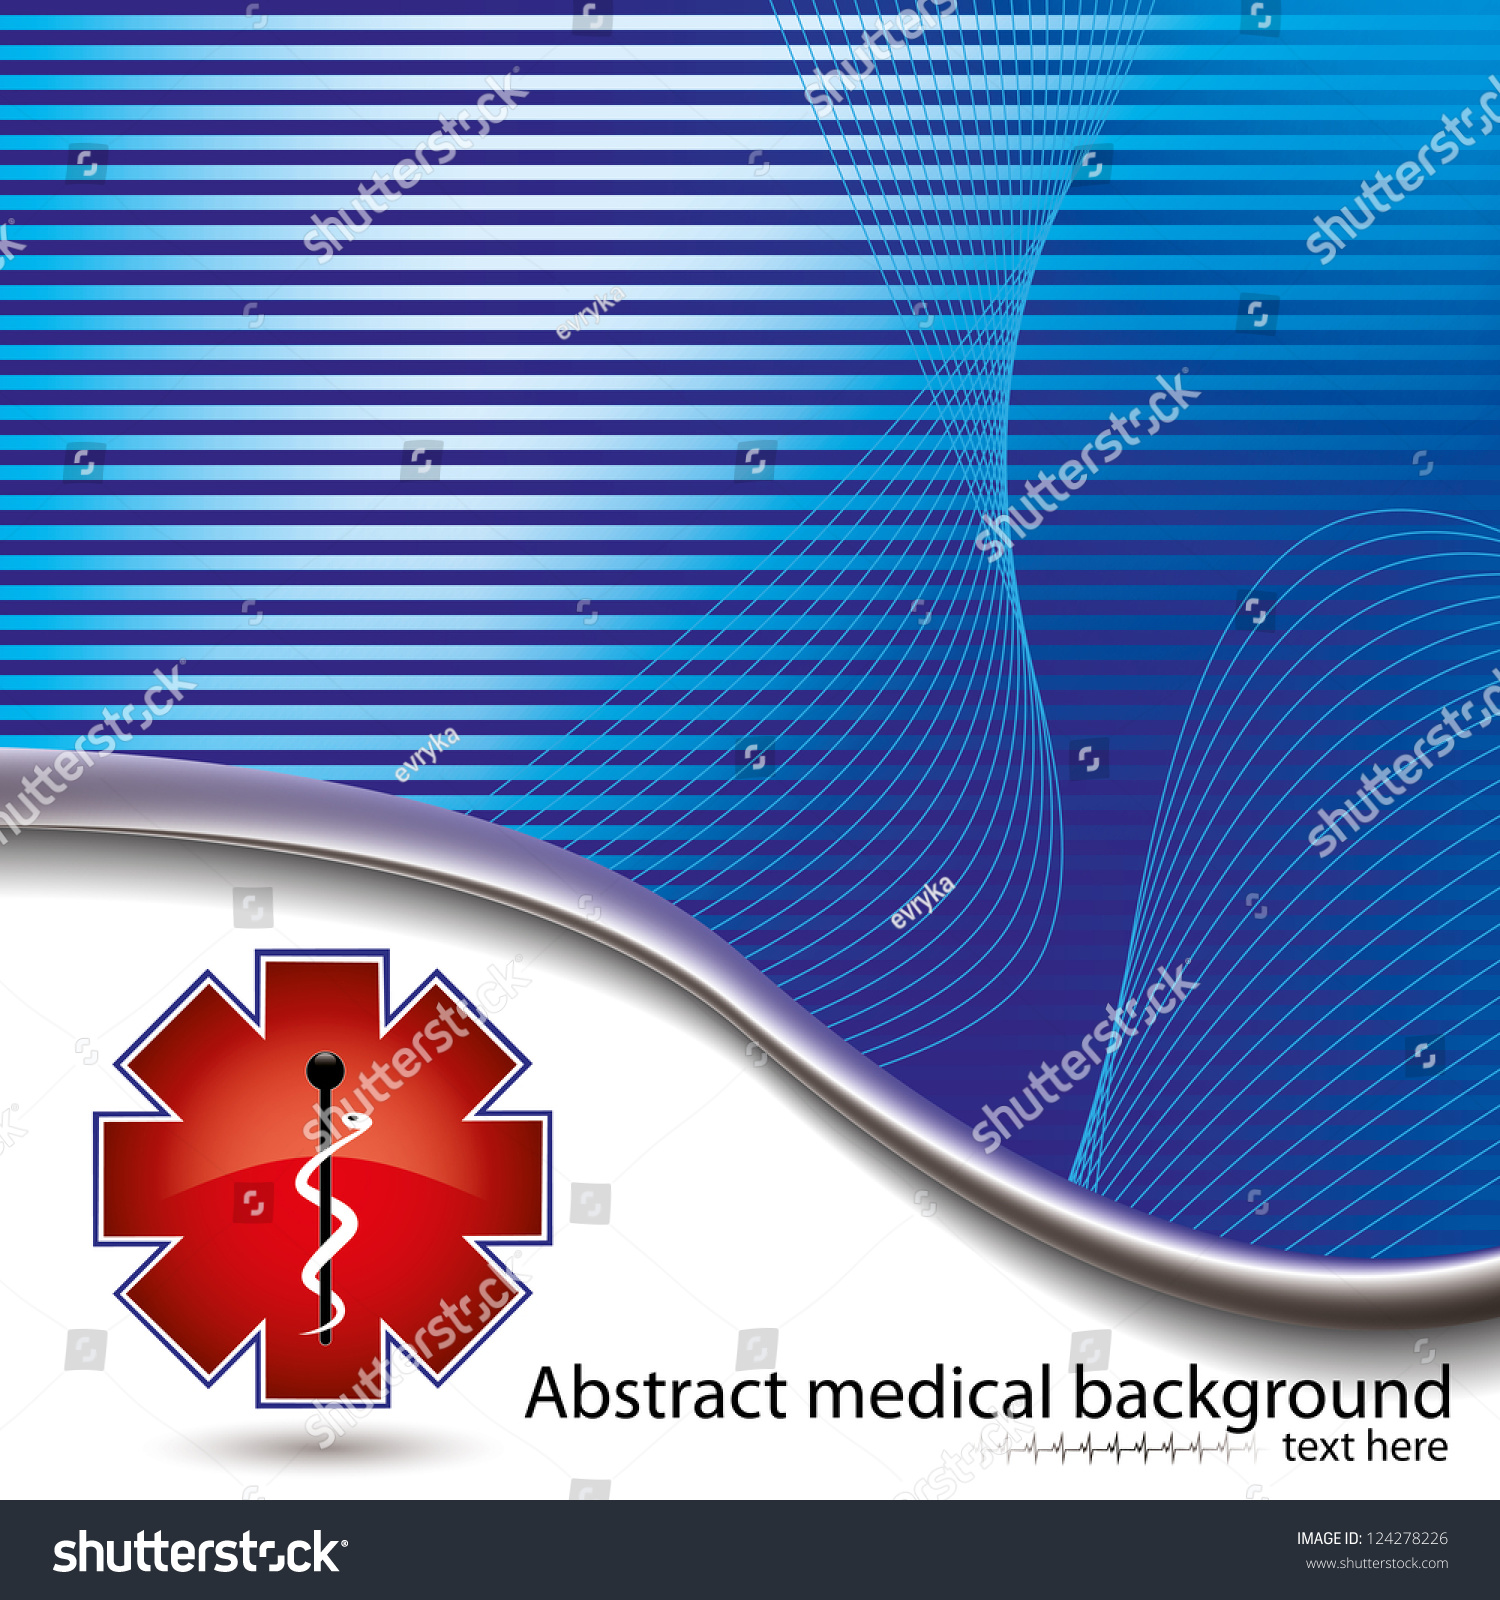 red medical background - photo #28